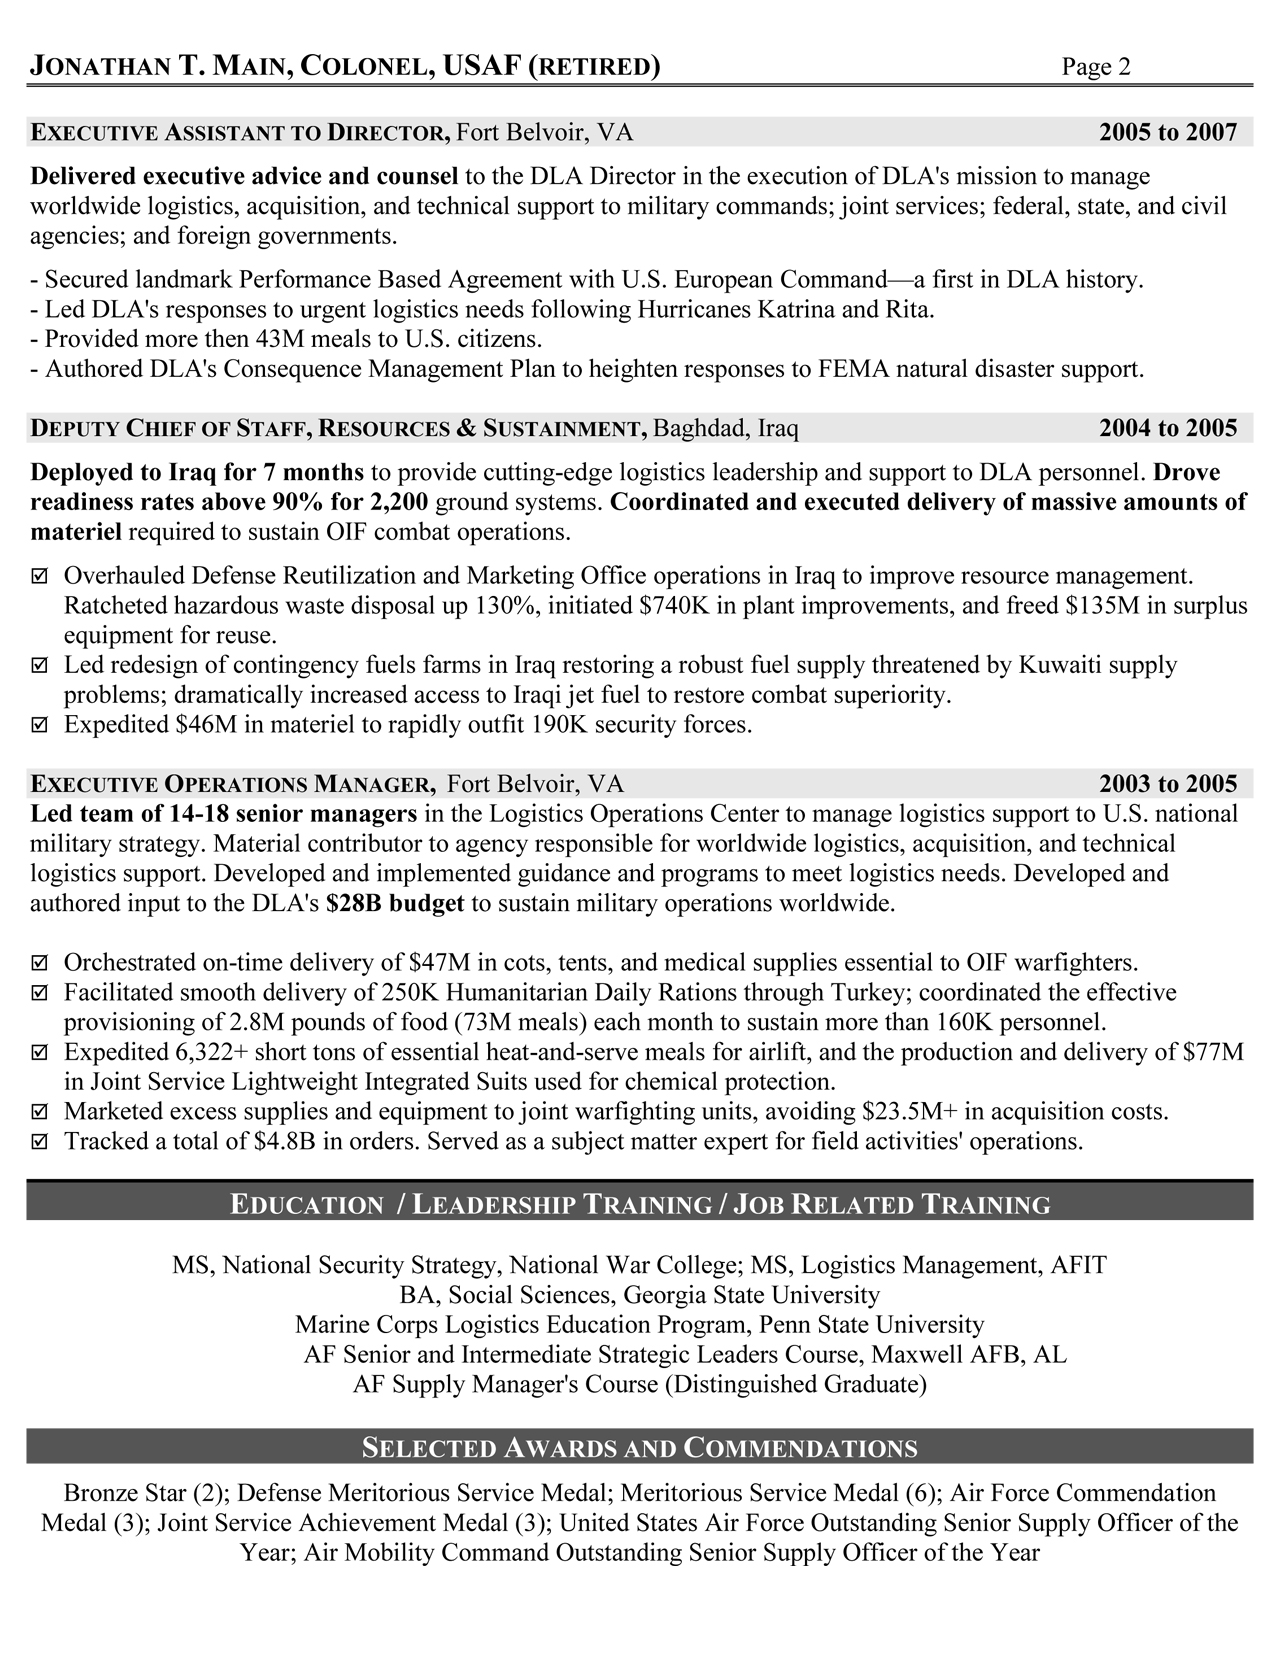 resume writing services for retired military to civilian resumes service logistician Resume Resume Writing Service For Military To Civilian